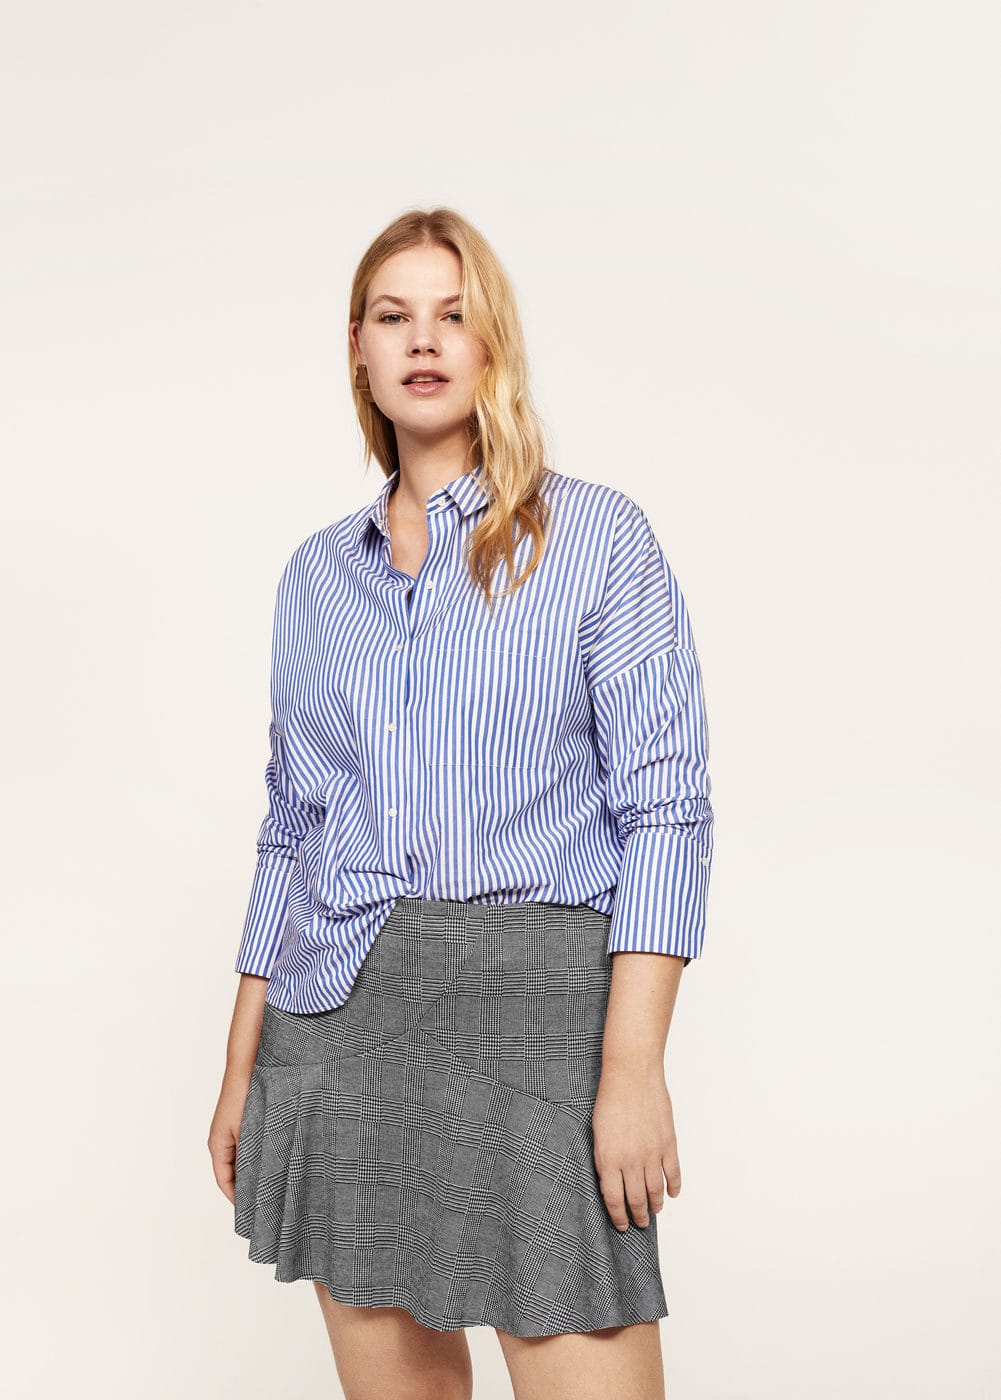 Prince of wales skirt | VIOLETA BY MANGO